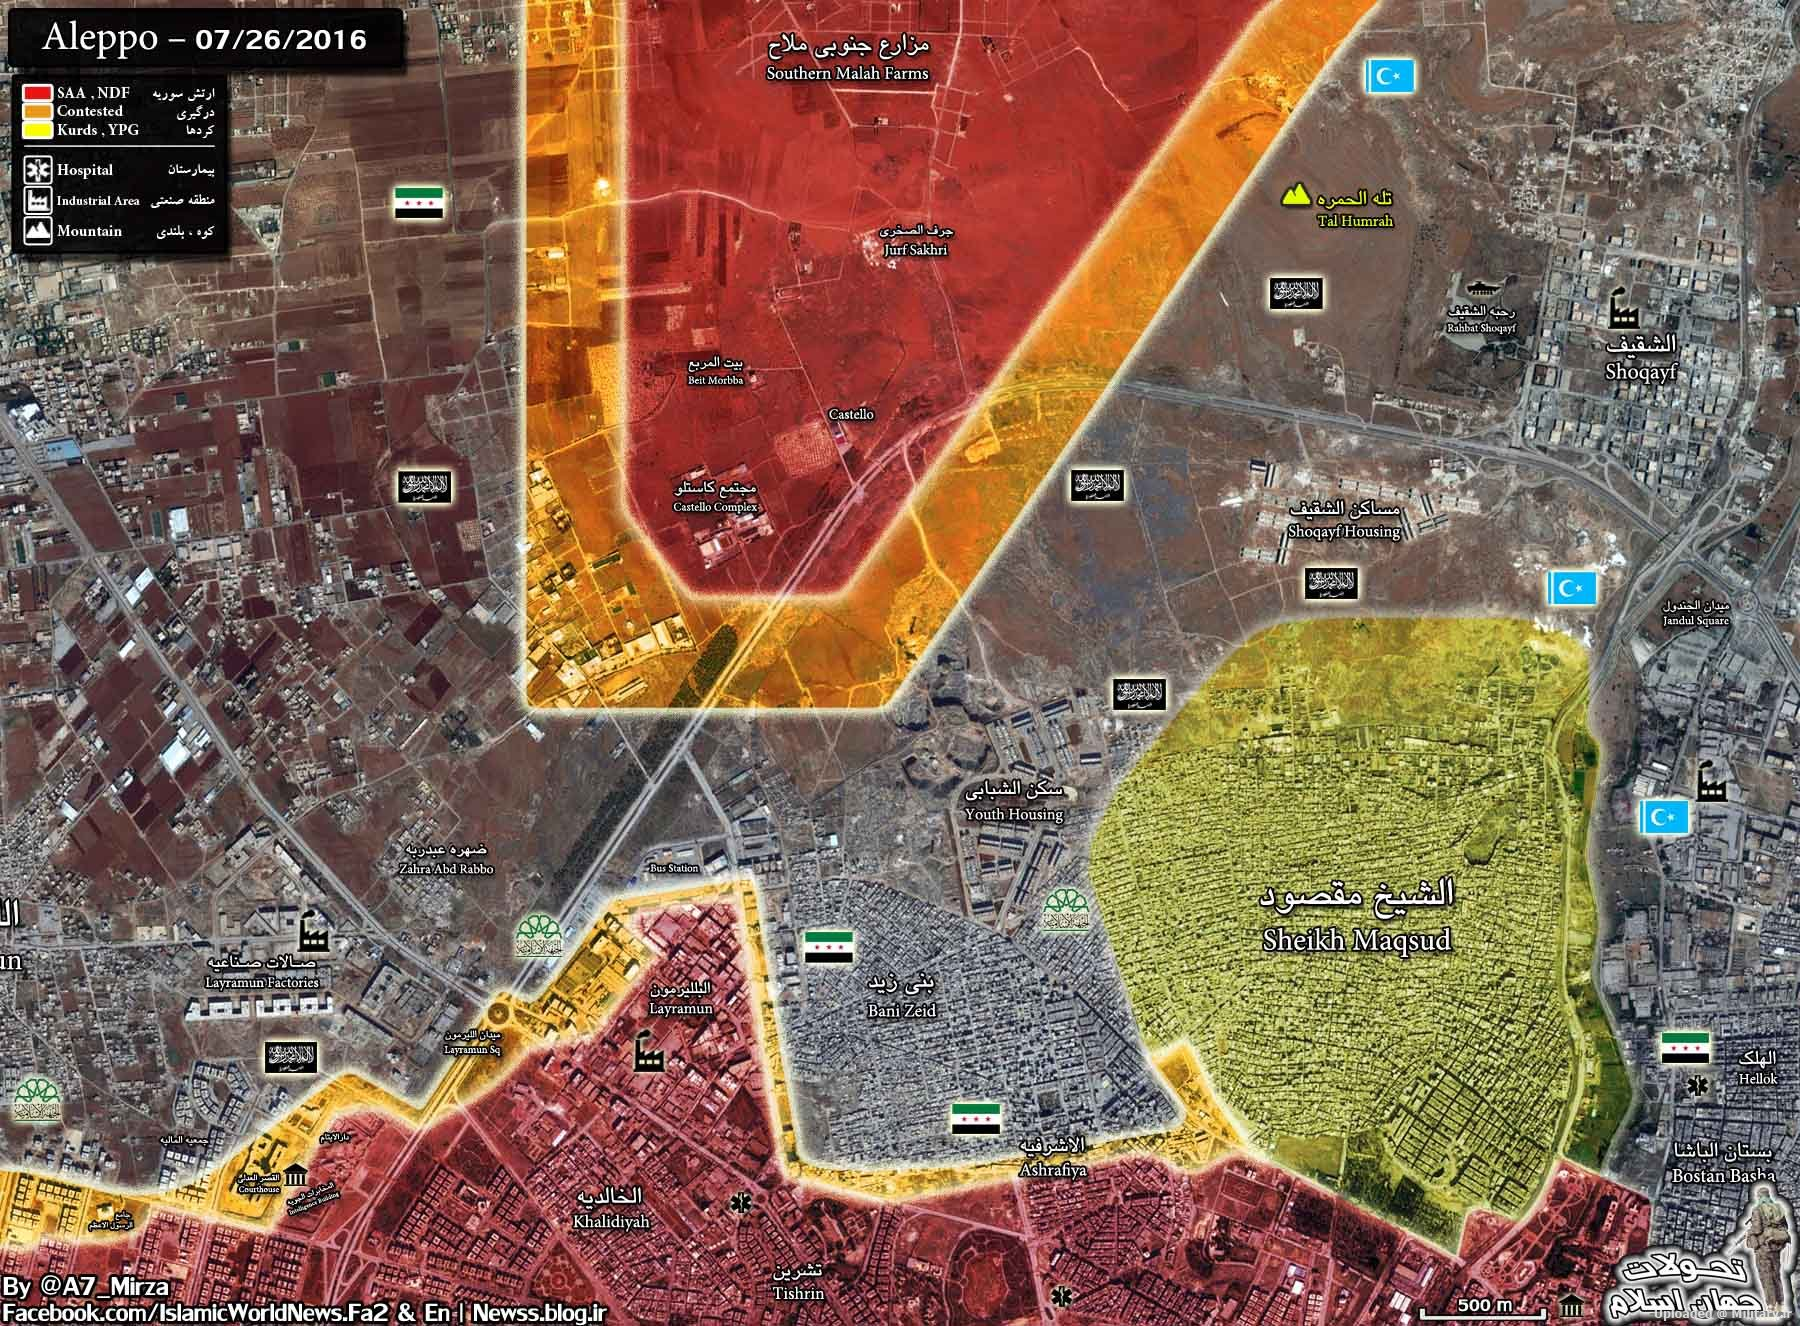 Aleppo_cut2_26july_5mordad_low.JPG